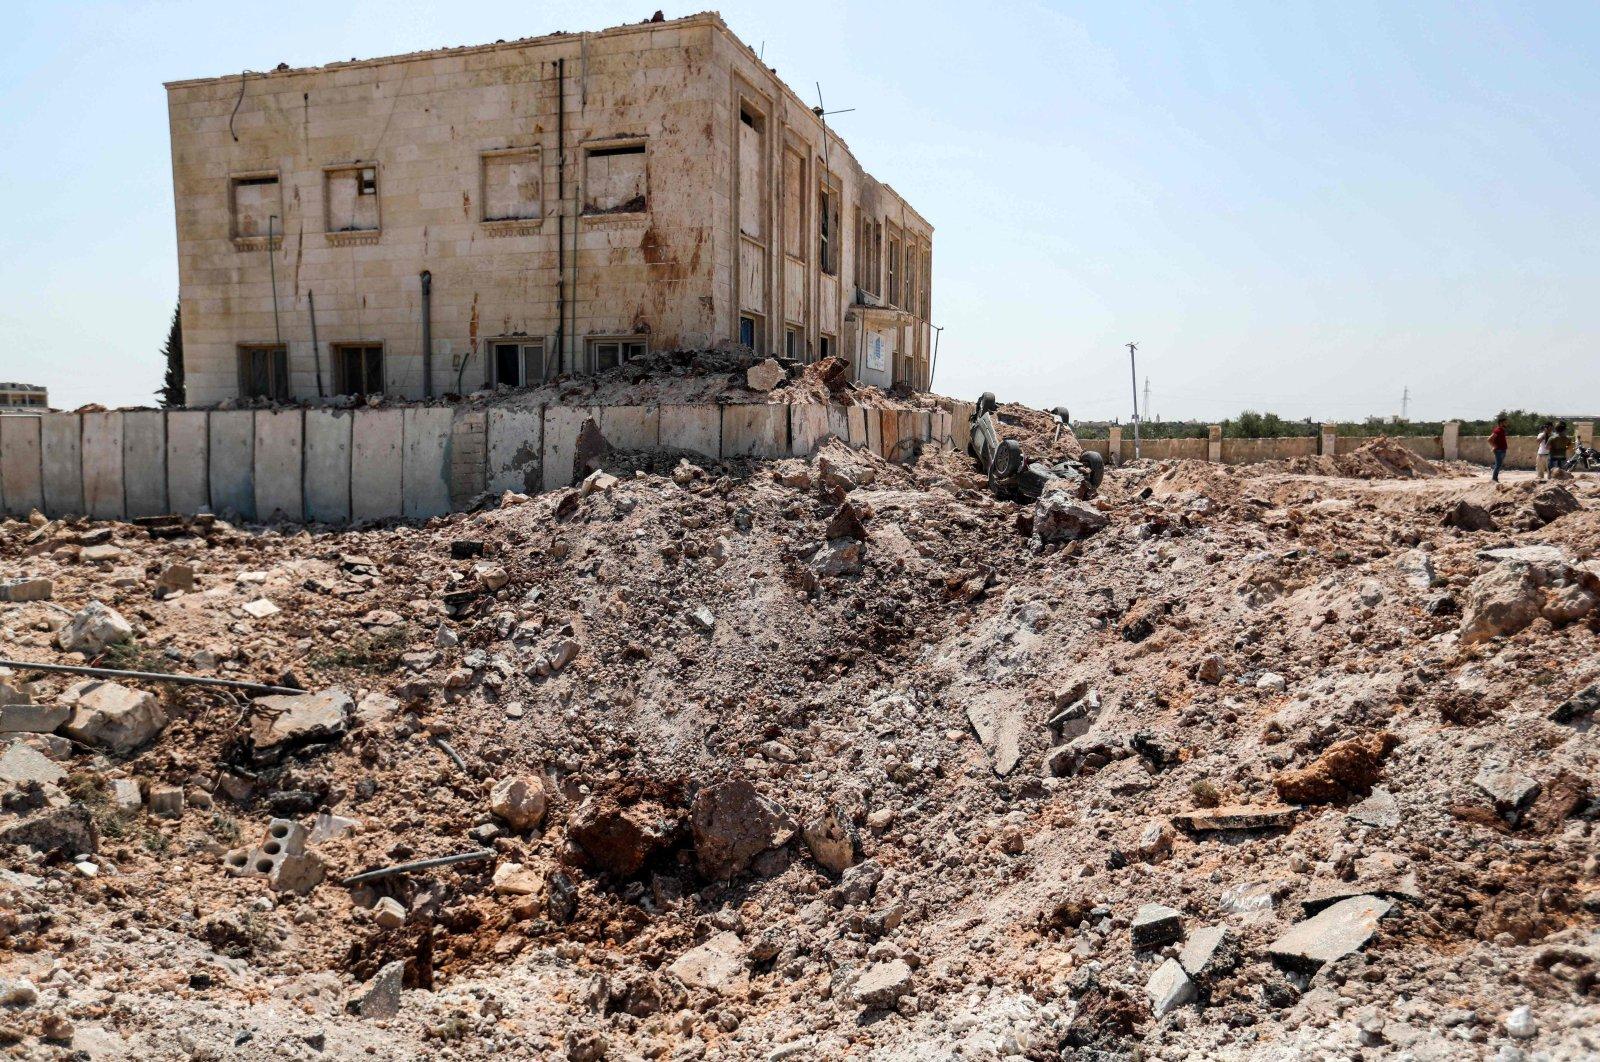 This picture taken on Aug. 31, 2019, shows a view outside a health facility that was hit by a reported Russian airstrike after midnight in town of Urum al-Kubra in the western countryside of Syria's northern Aleppo province, just before a truce went into effect. (AFP Photo)